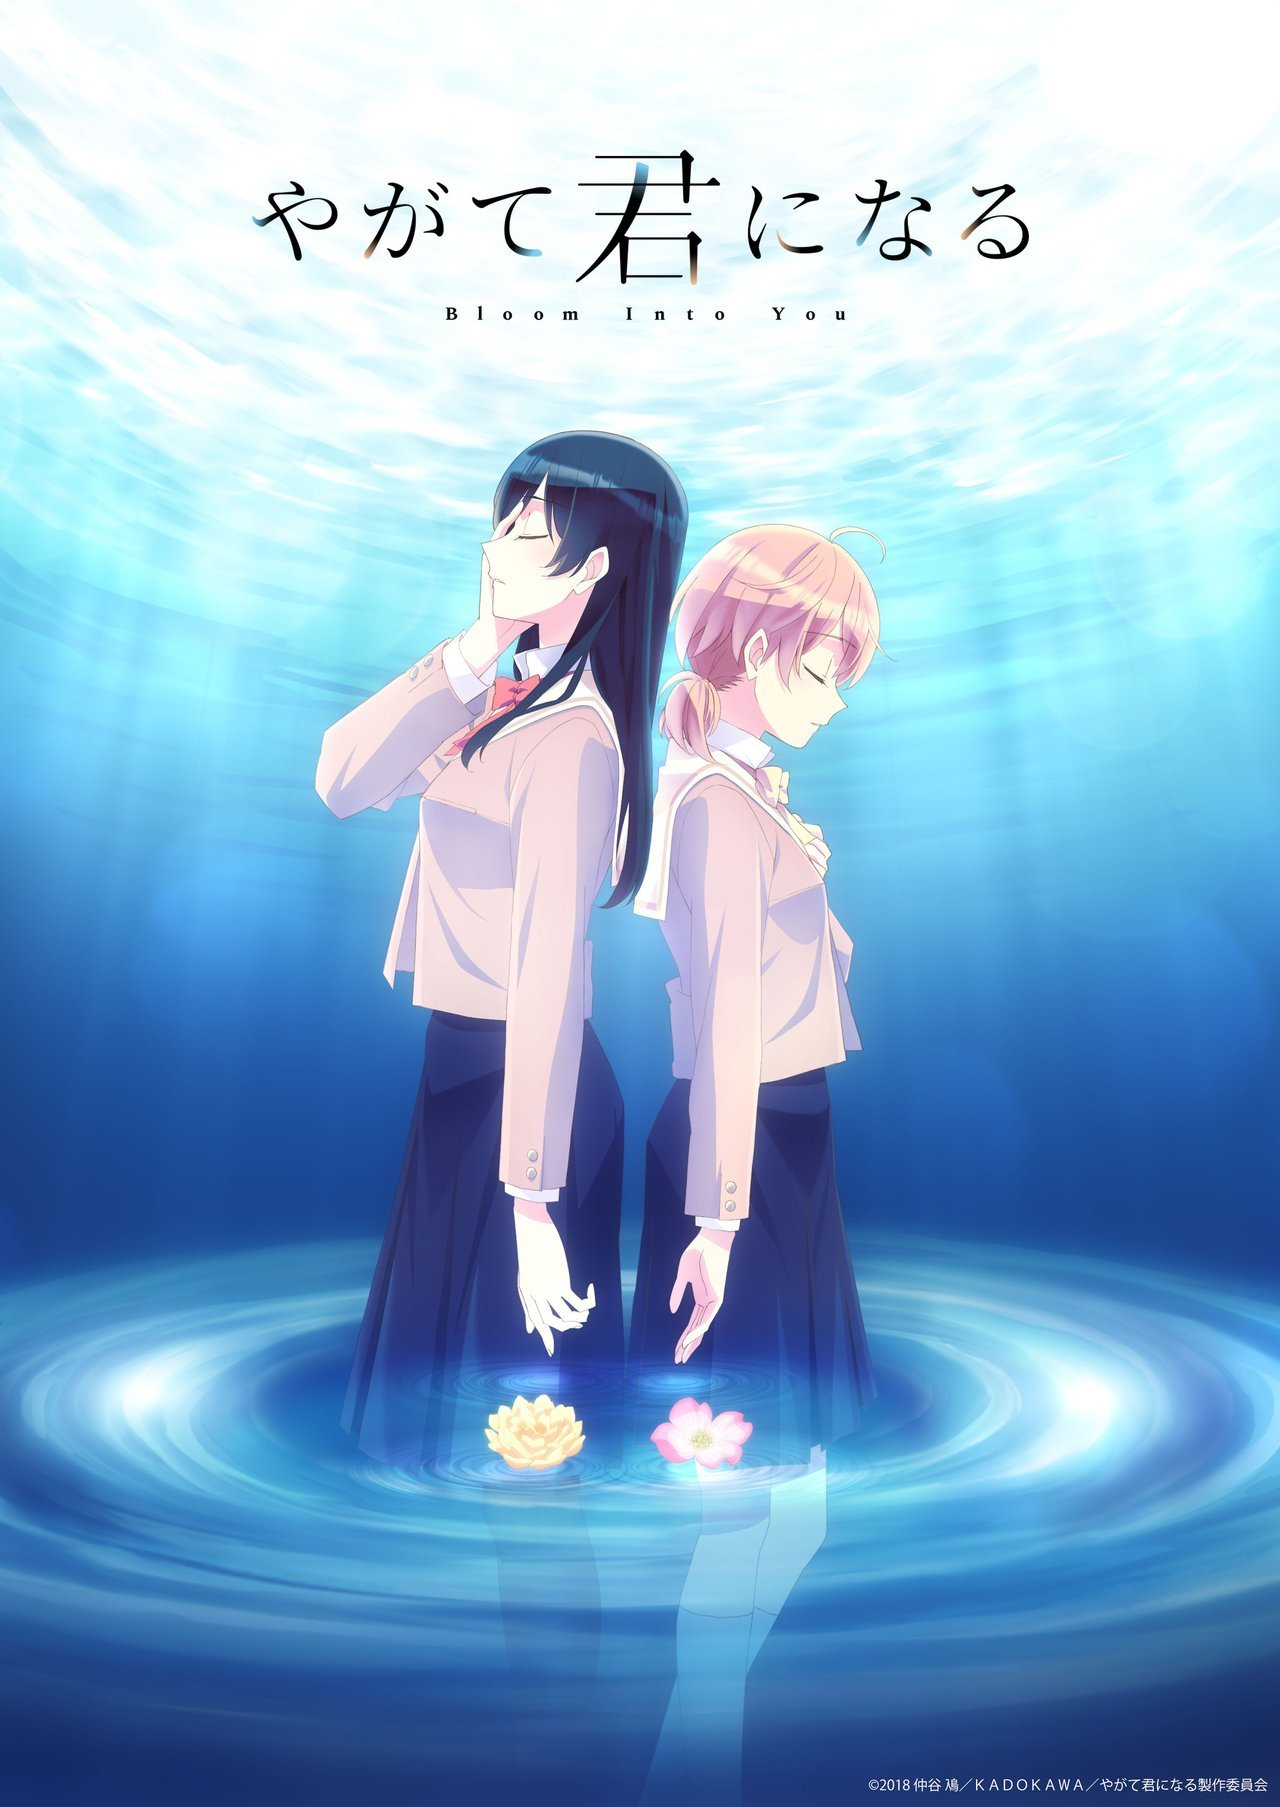 """Yagate Kimi ni Naru"" (Bloom Into You) TV anime key visual and staff revealed. It will be produced by studio Troyca. Series premiere October 2018. -Staff-• Director: Makoto Katou • Series Composition, Script: Jukki Hanada • Character Designer:..."